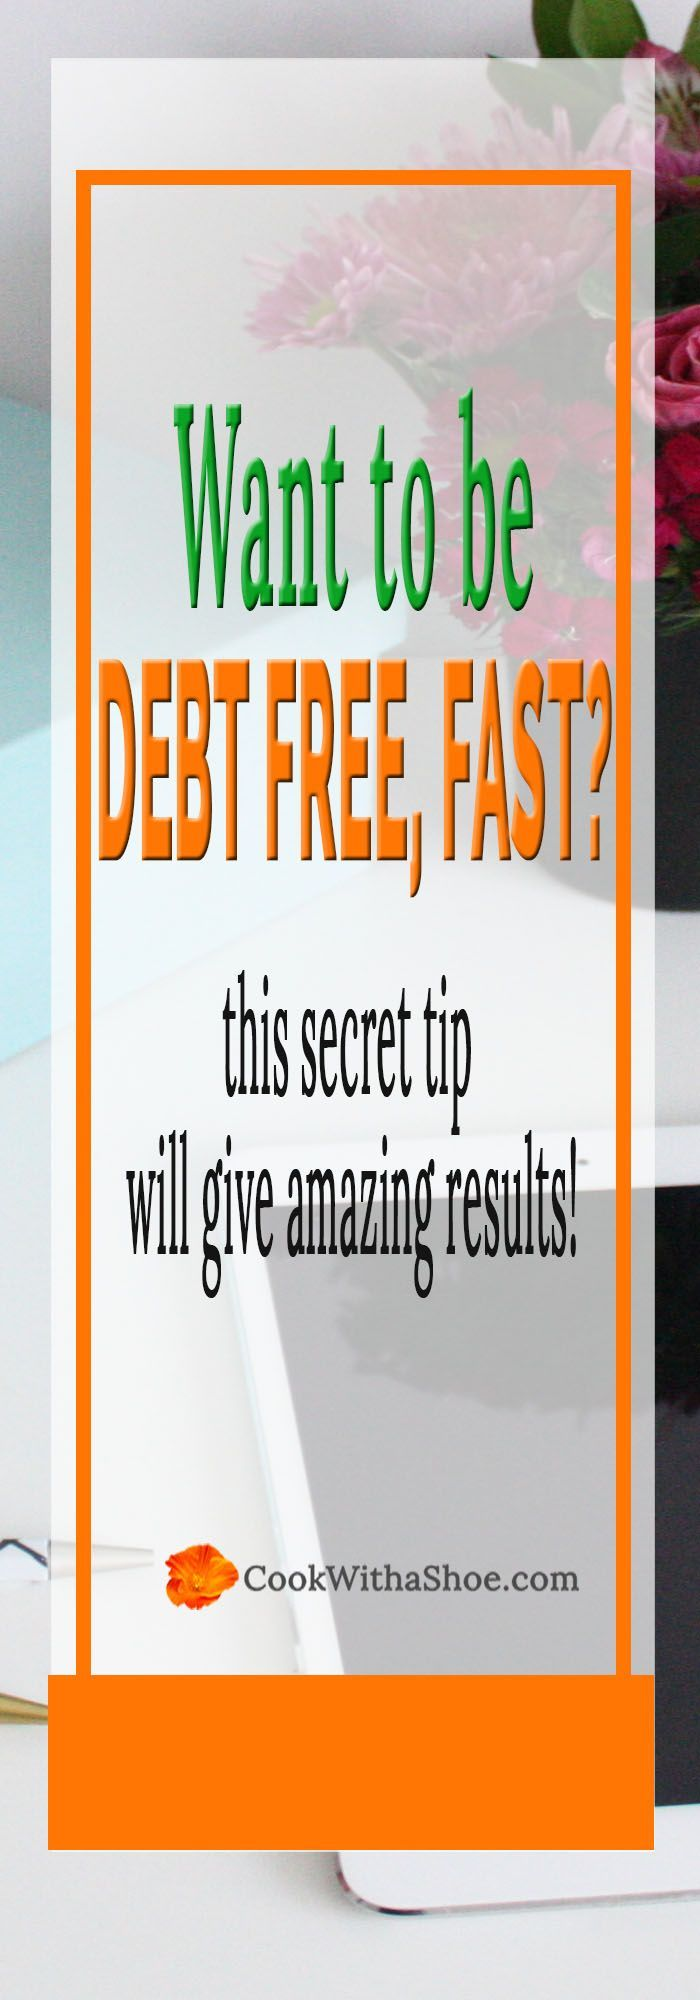 pay off debt | pay debt fast | pay off debt quickly | dave ramsey | pay off debt on one income | tips to pay off debt | motivation to pay off debt | how to pay off debt | how to pay off credit cards | how to pay off medical  debt | how to pay off student loans | how to pay off debt in collections | pay off debt tracker | pay off debt ideas | pay off debt budget | ways to pay off debt | pay off debt faster |  visual plan to pay off debt | inspiration to pay off debt | goal to pay off debt…